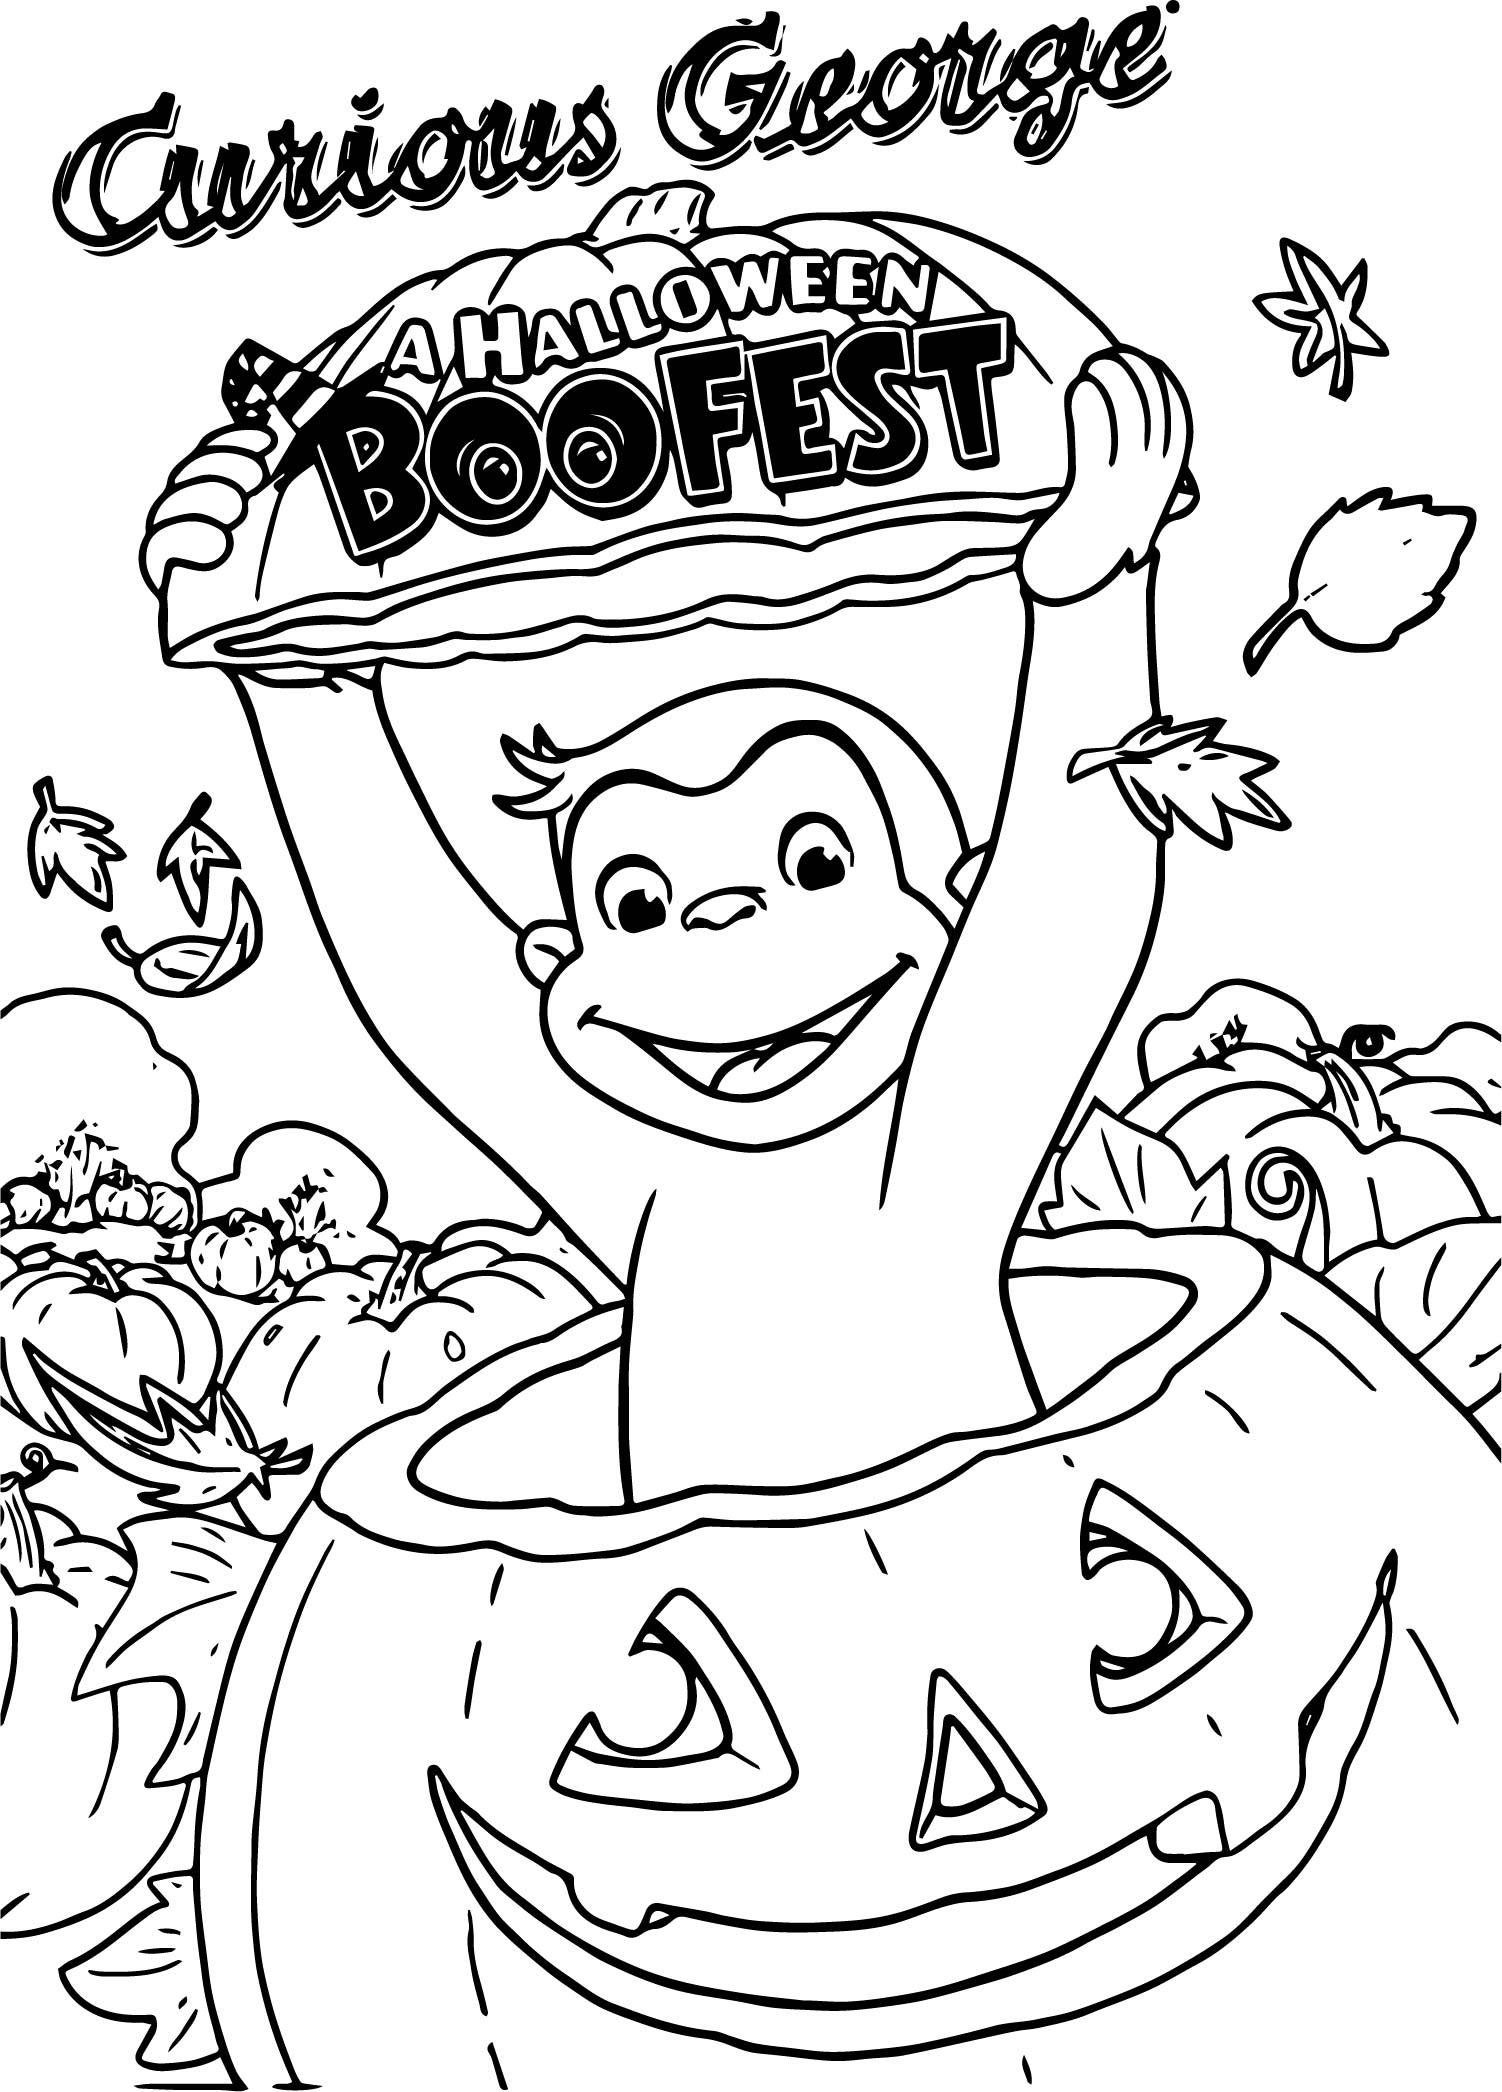 Curious George A Halloween Boofest Coloring Page | Wecoloringpage